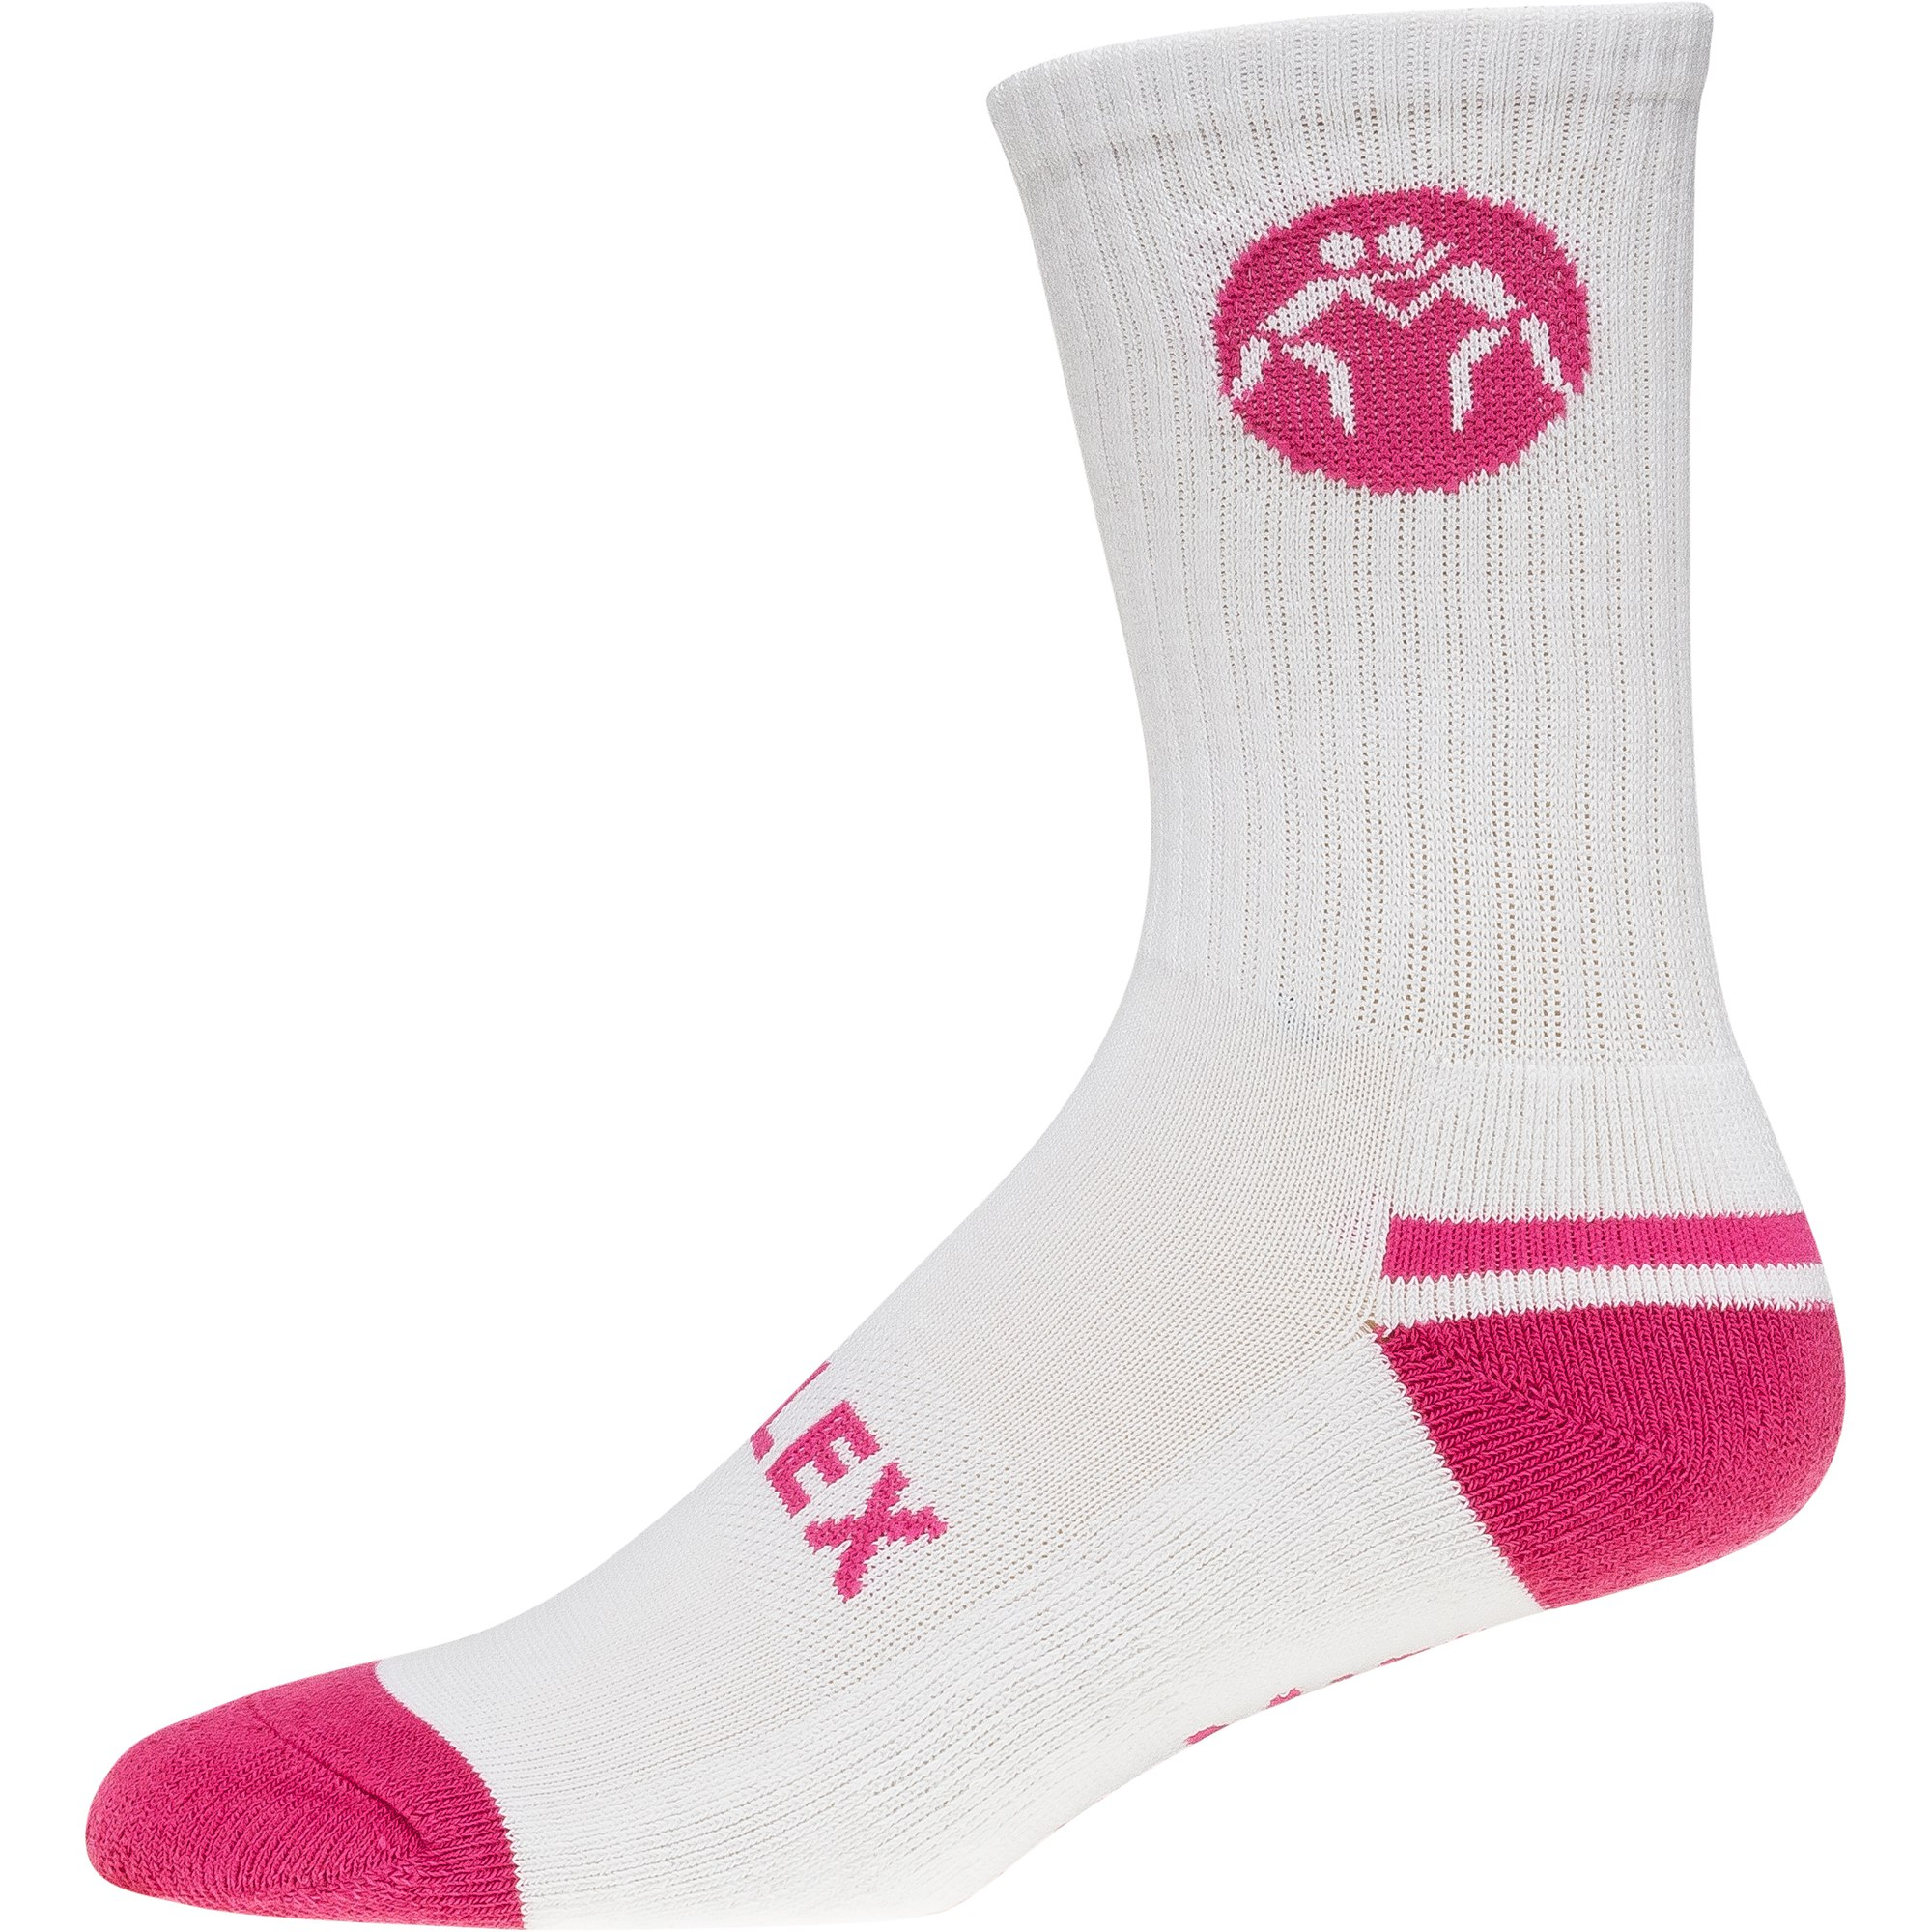 c9ceb8d1b86 ... Sock White Pink frontSuplex Sock White Pink sole